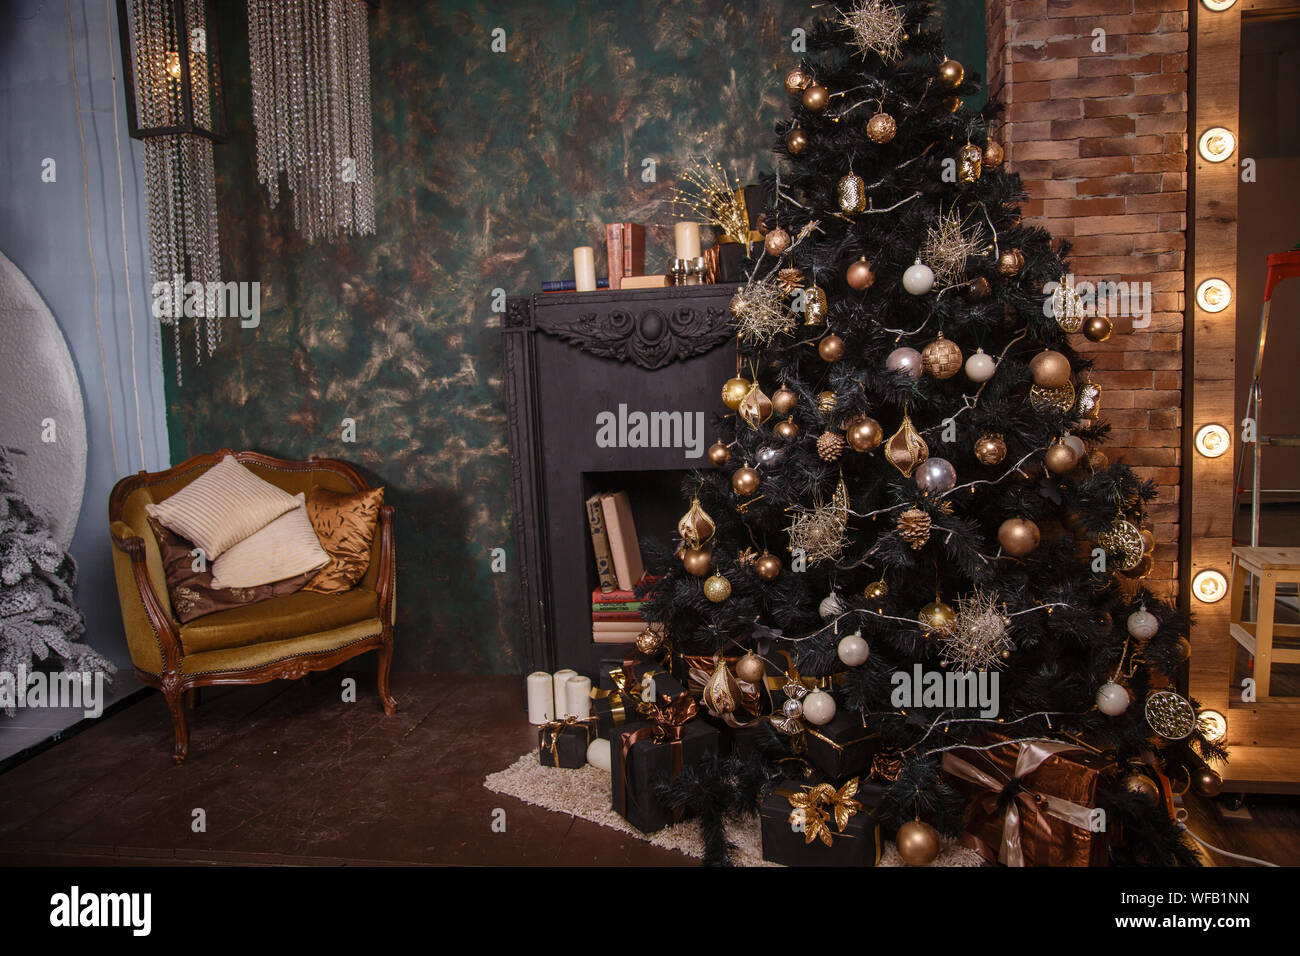 Decorated Christmas Room With Beautiful Fir Tree Black And Gold Stock Photo Alamy